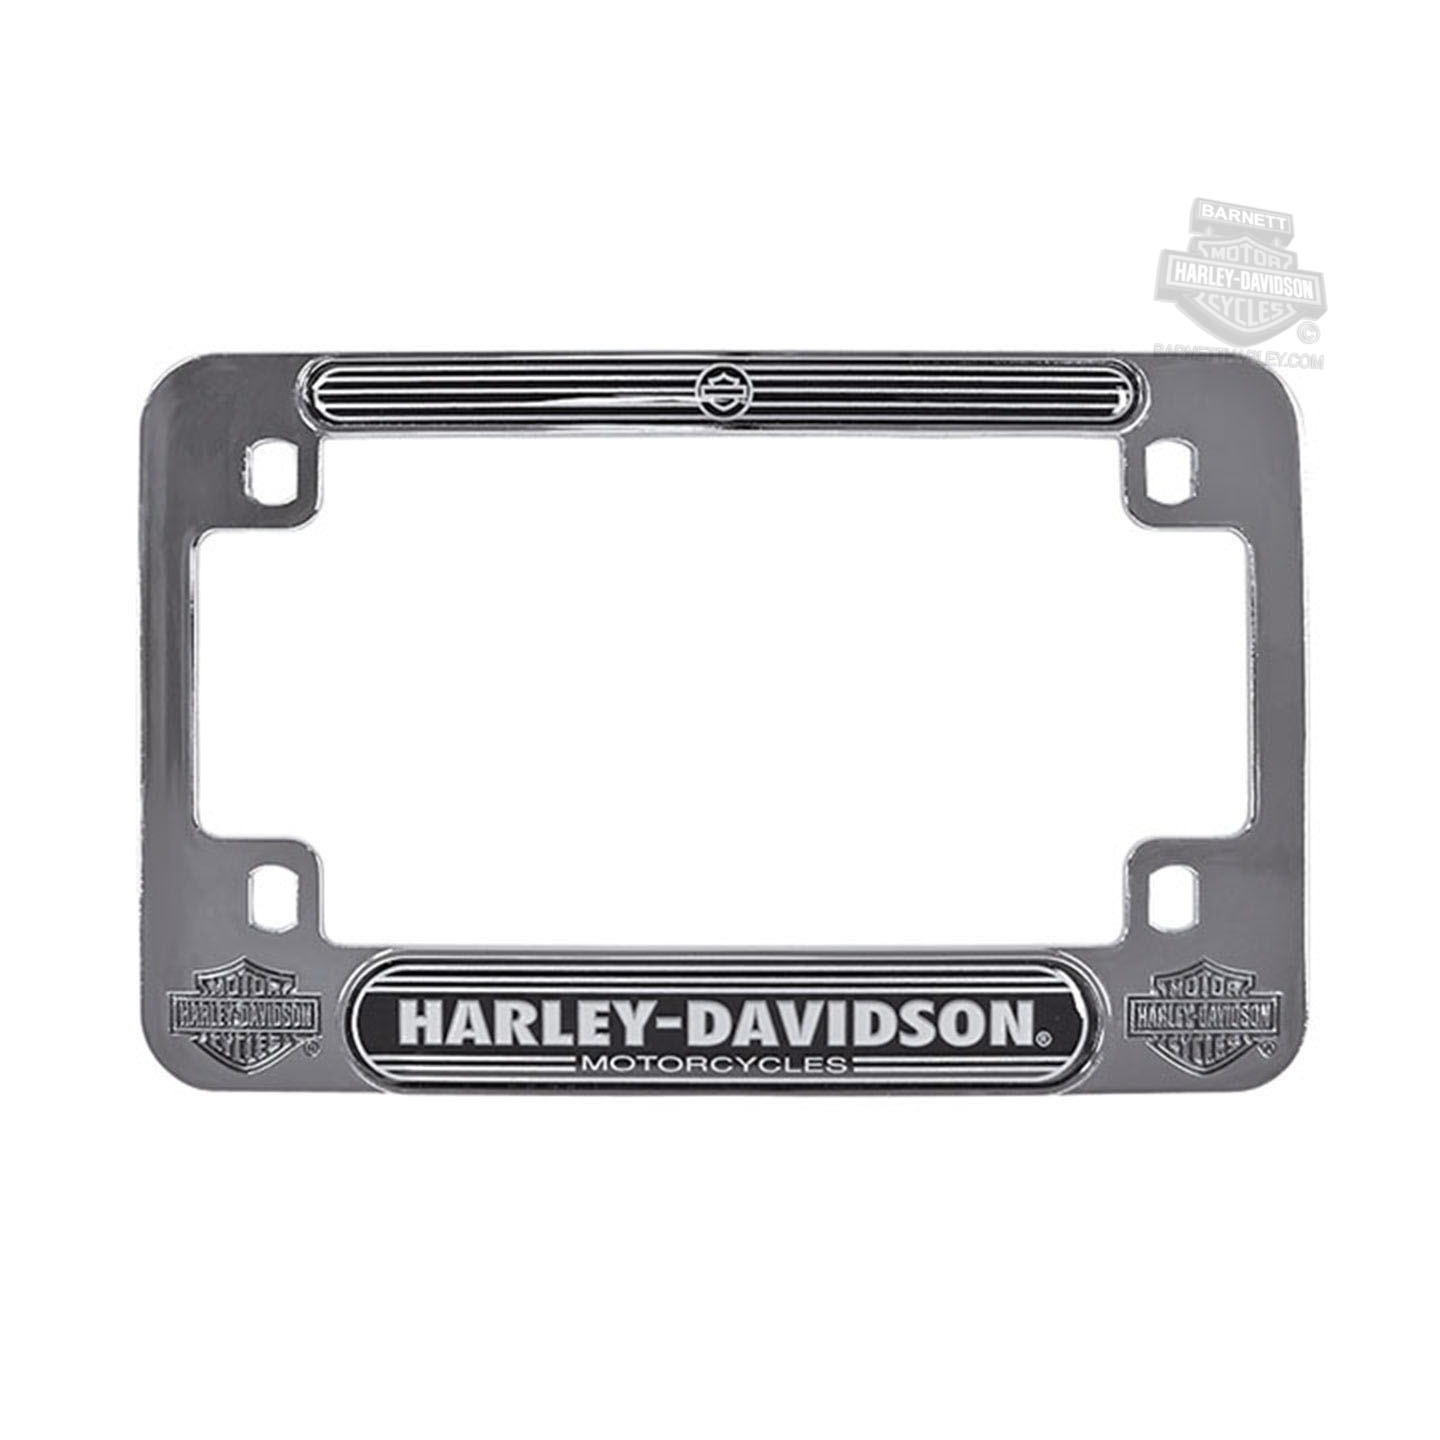 Harley-Davidson® H-D Name with B&S Logos Metal with Chrome Insert Motorcycle License Frame